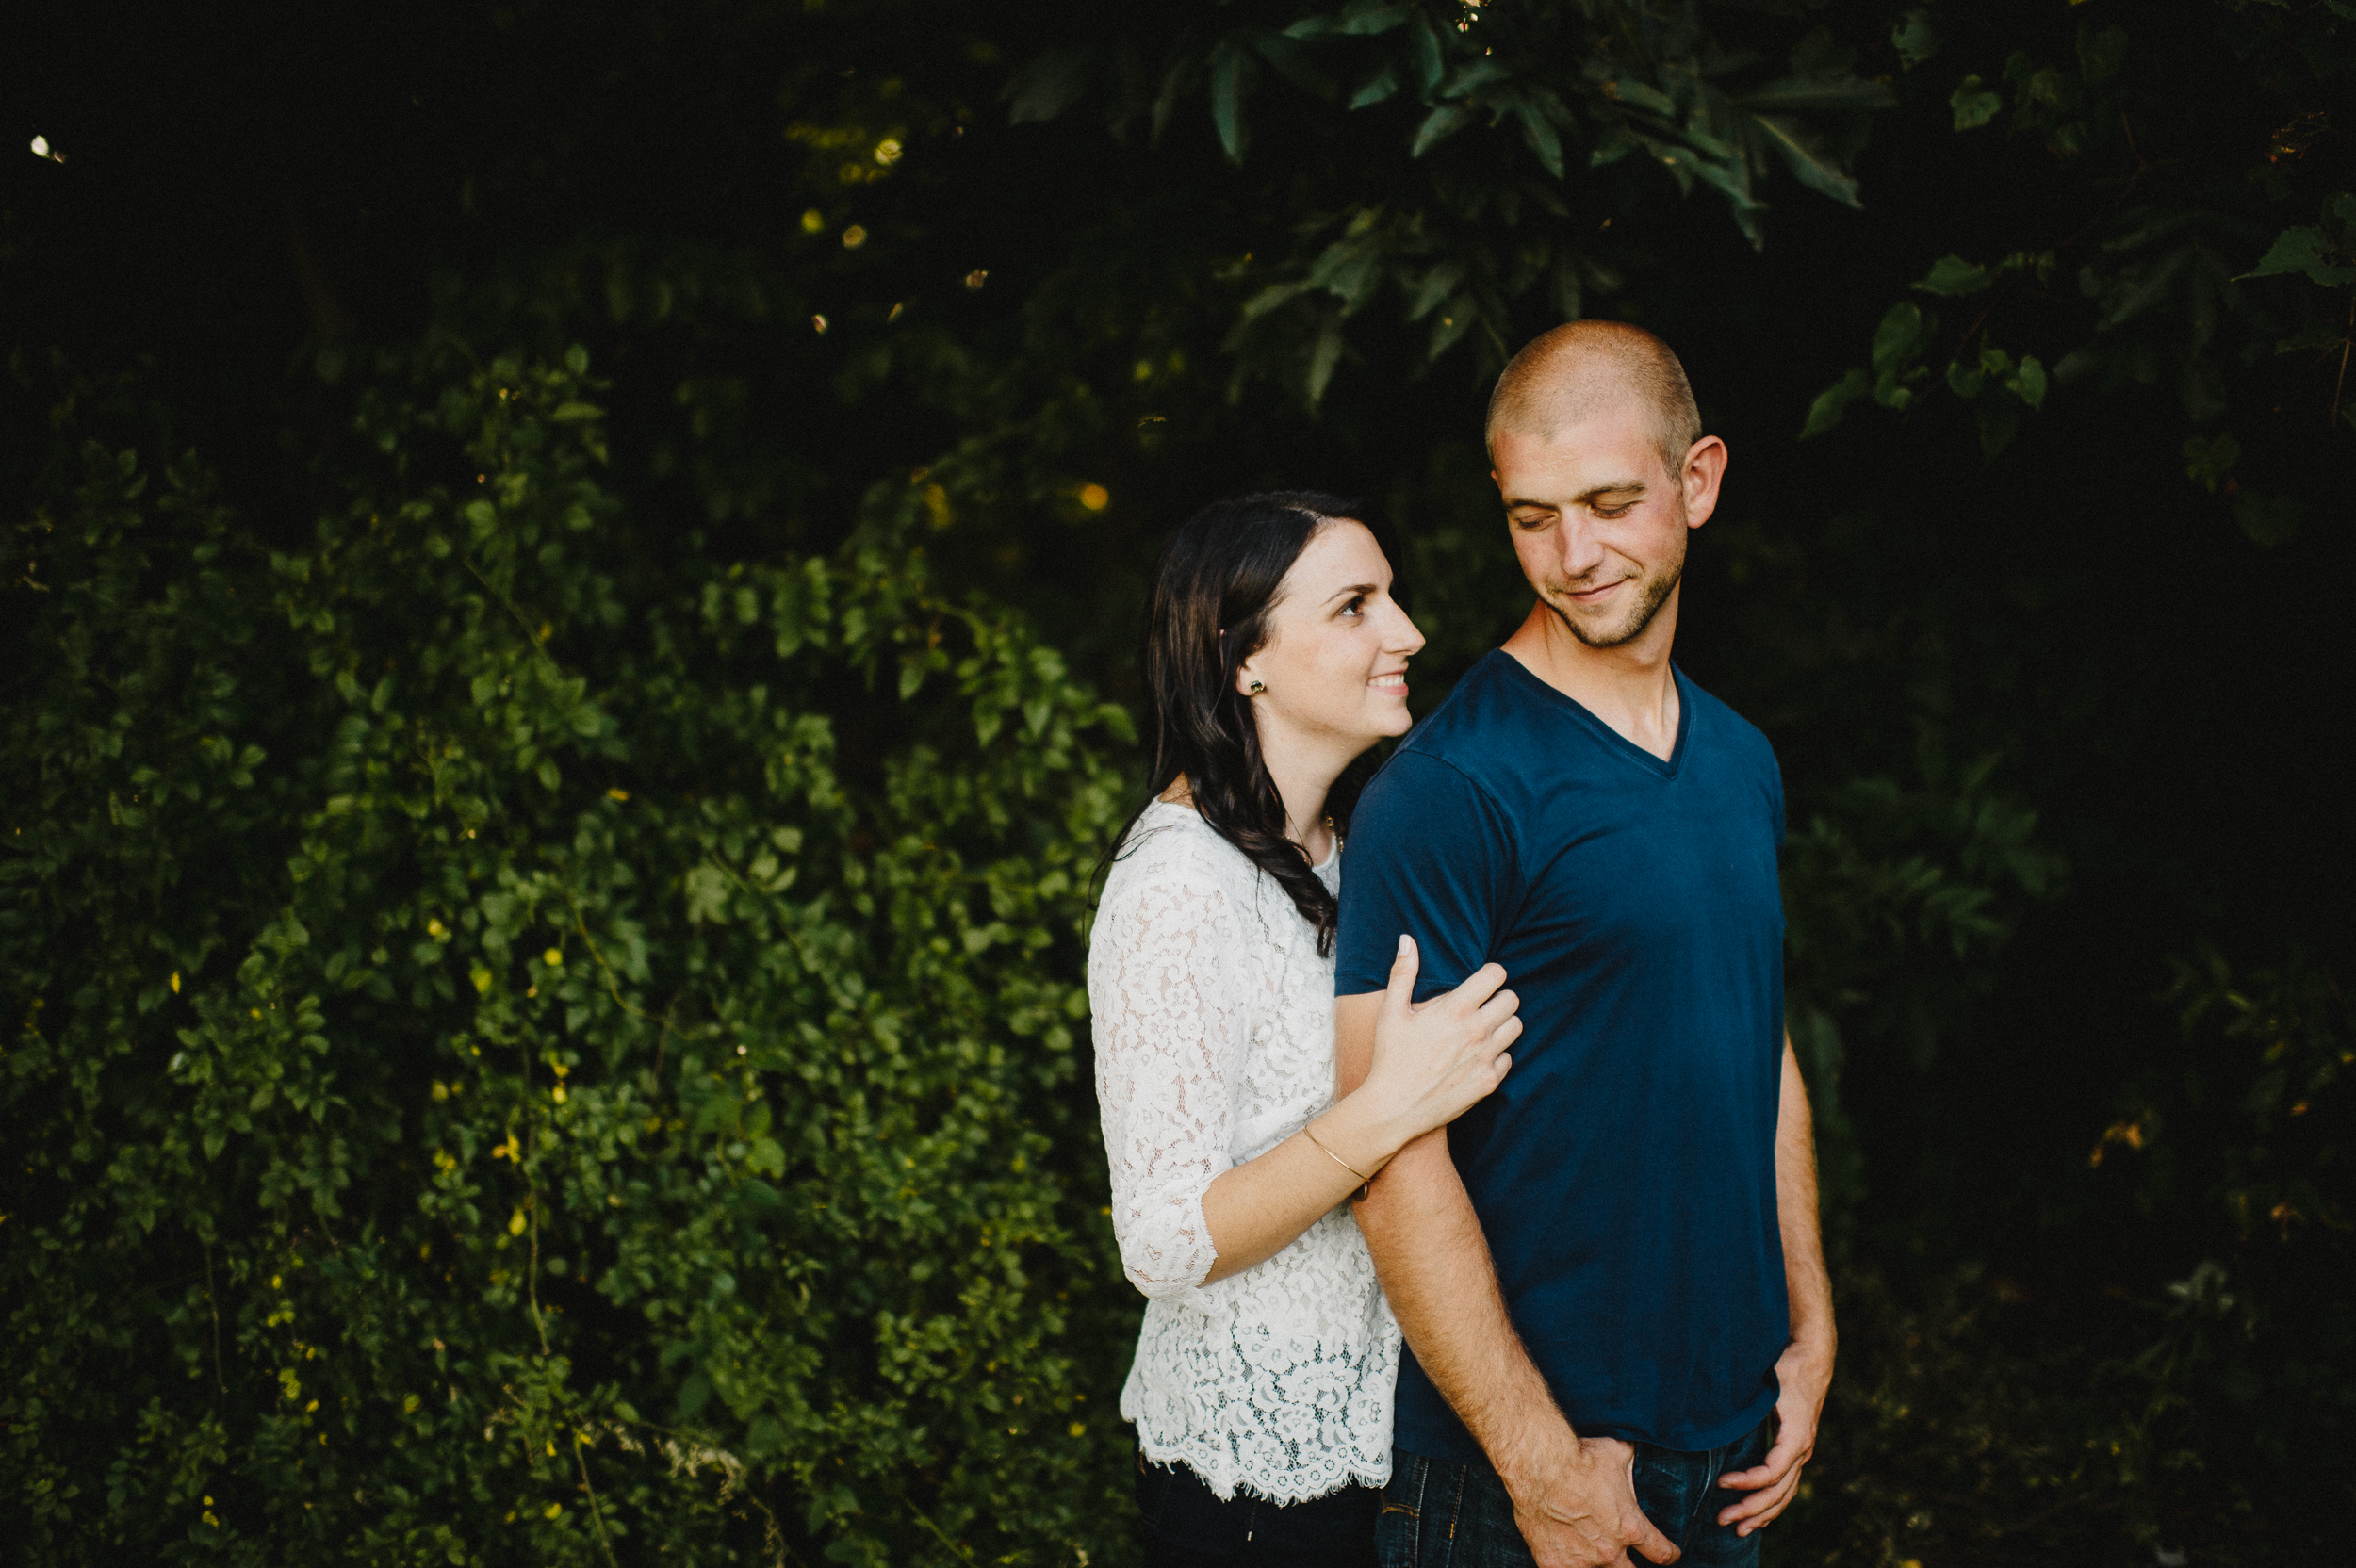 pat-robinson-photography-pa-engagement-session-8.jpg